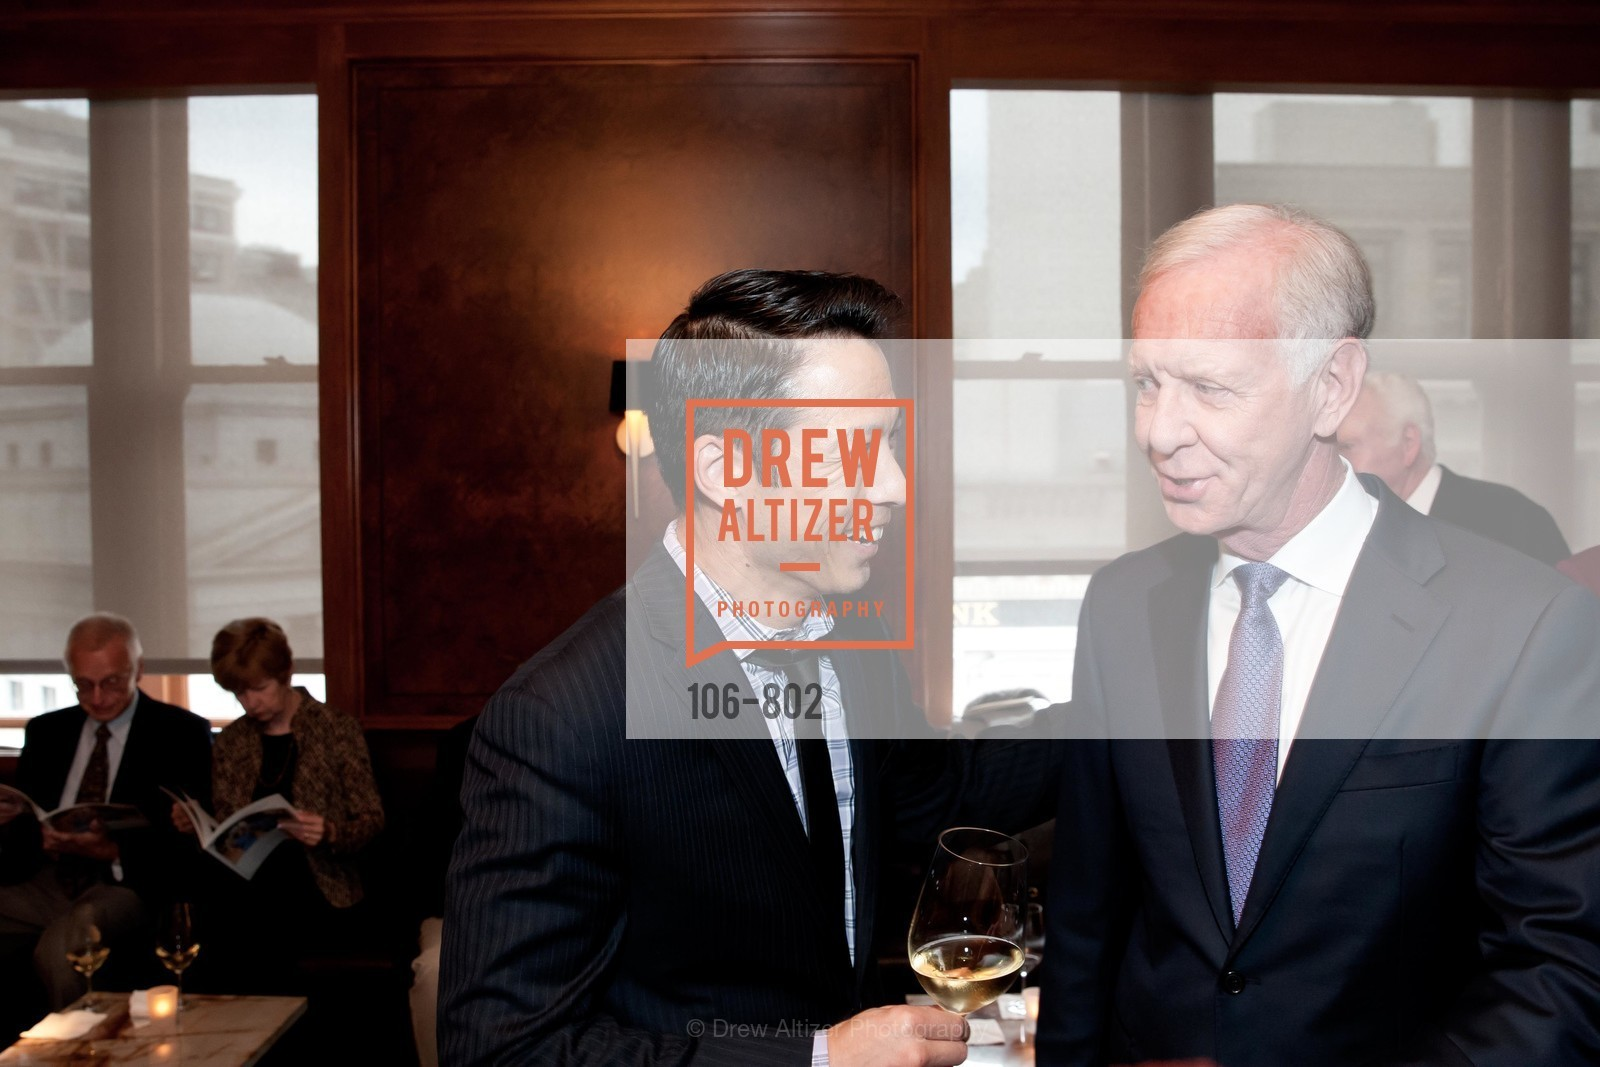 Ryan Lee, Sully Sullenberger, MR PORTER Celebrate The San Francisco Issue of The Journal, US, April 23rd, 2015,Drew Altizer, Drew Altizer Photography, full-service agency, private events, San Francisco photographer, photographer california